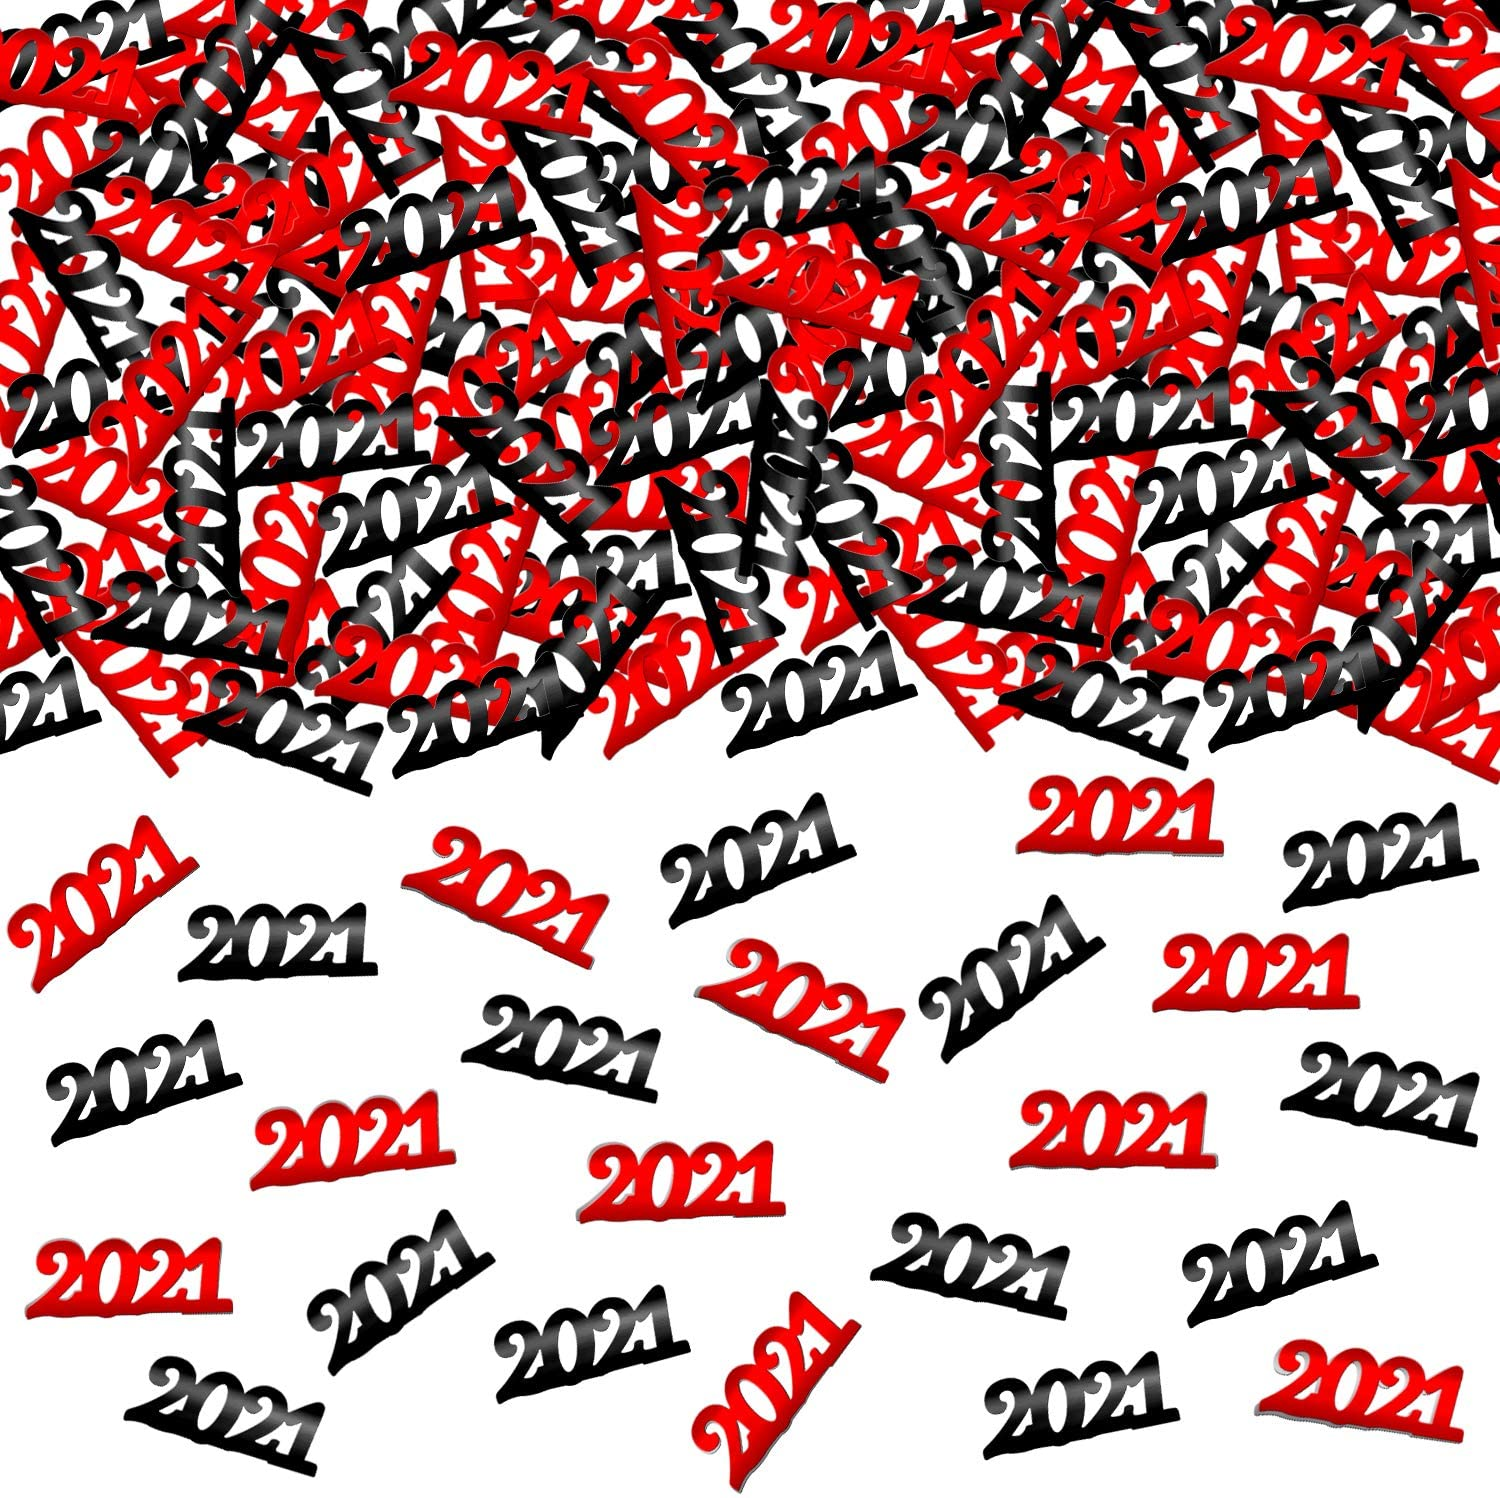 Red and Black 2021 Confetti - 1000 Pcs | Confetti 2021 Table Decorations | 2021 Decorations for Graduation,New Year Party | 2021 Graduation Confetti Decorations | Red, Black NYE Party Decorations 2021